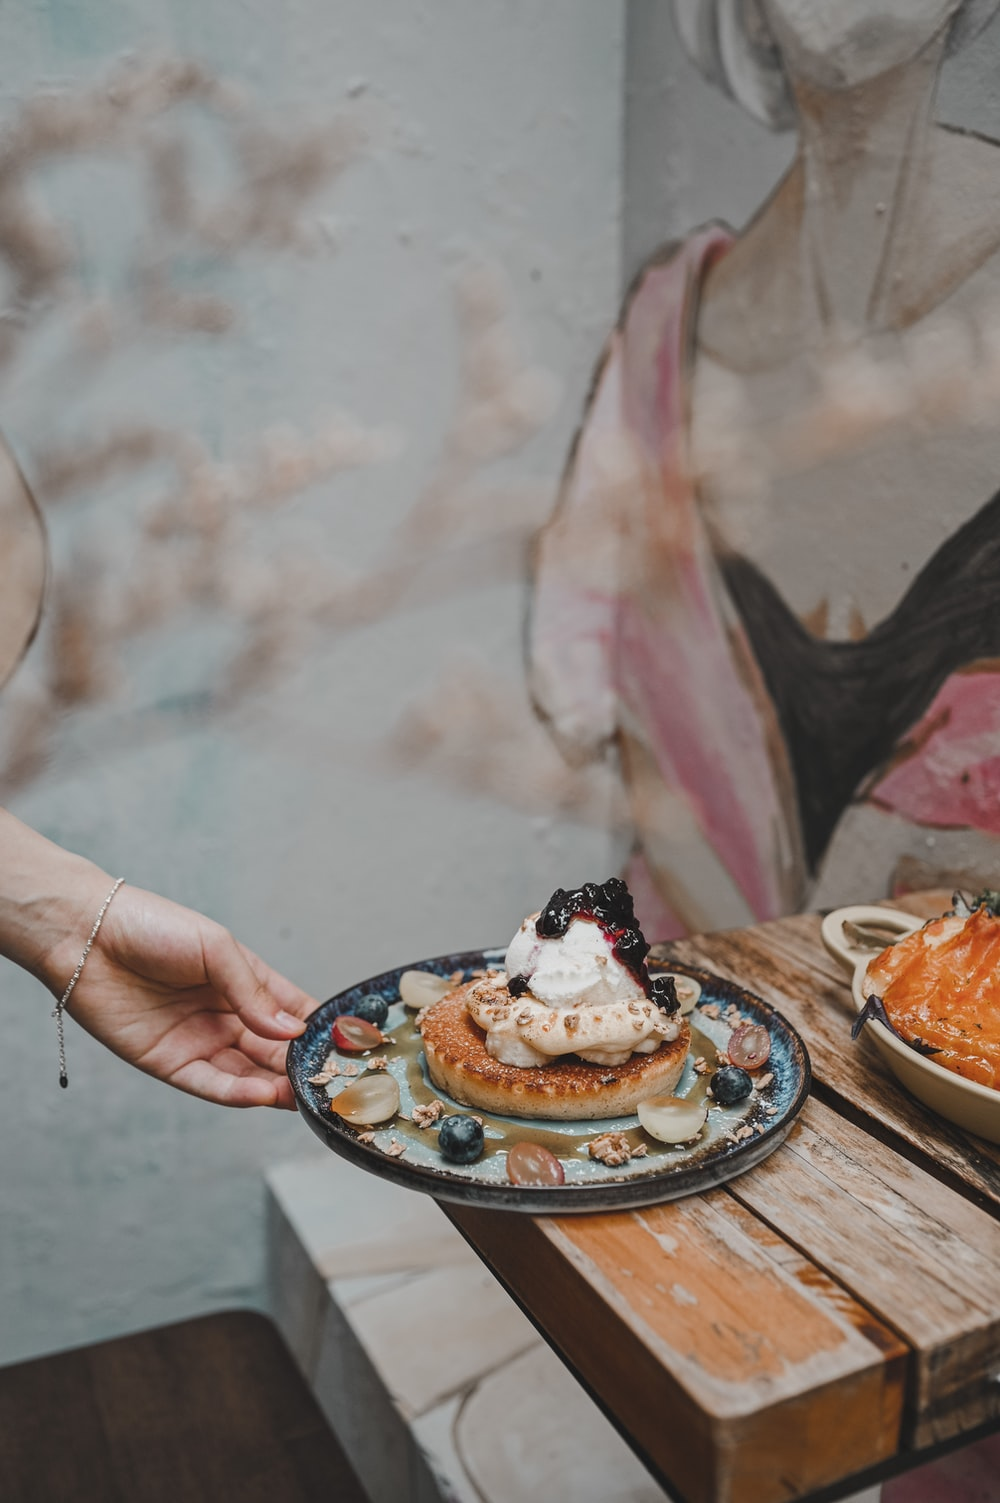 person holding a plate with cake